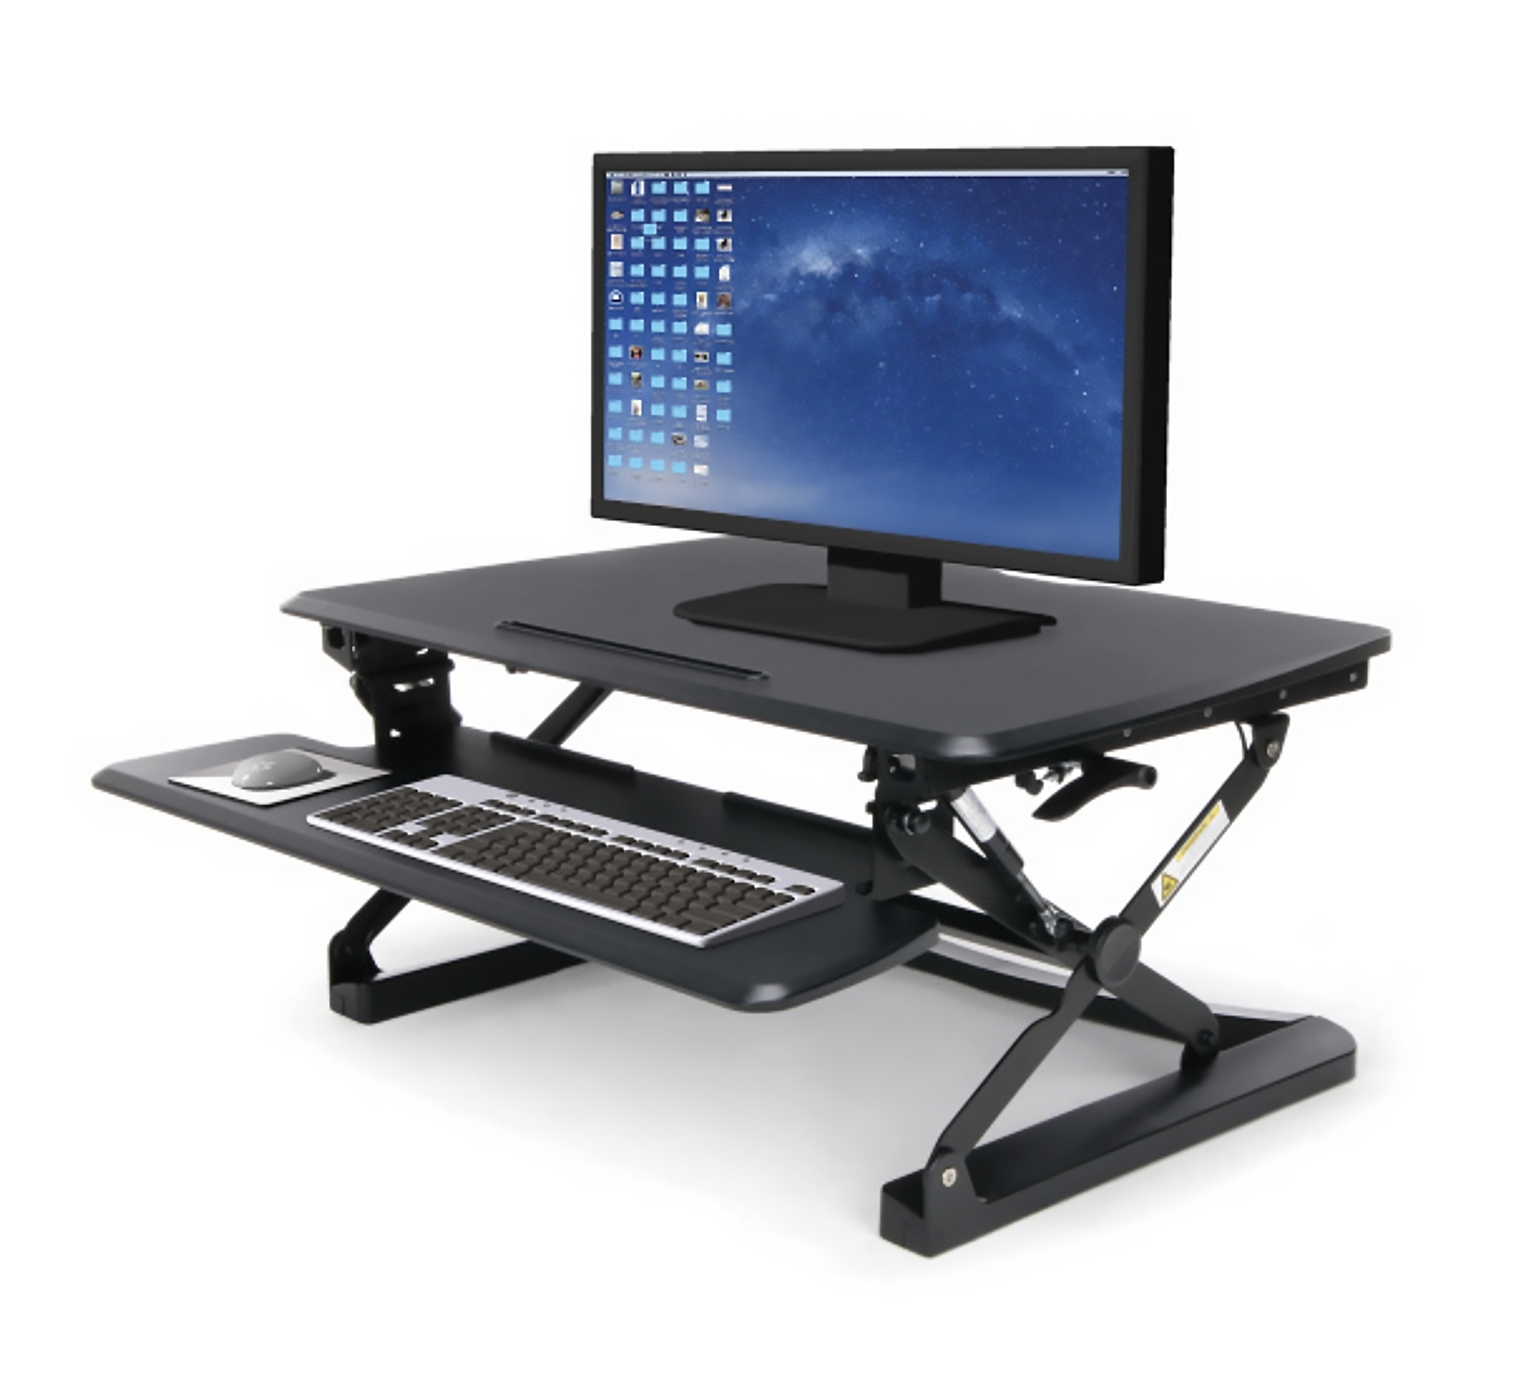 Popular Stand Up Computer Desks For Home, Office & Schoolssmartdesks In Computer Desks For Schools (View 13 of 20)